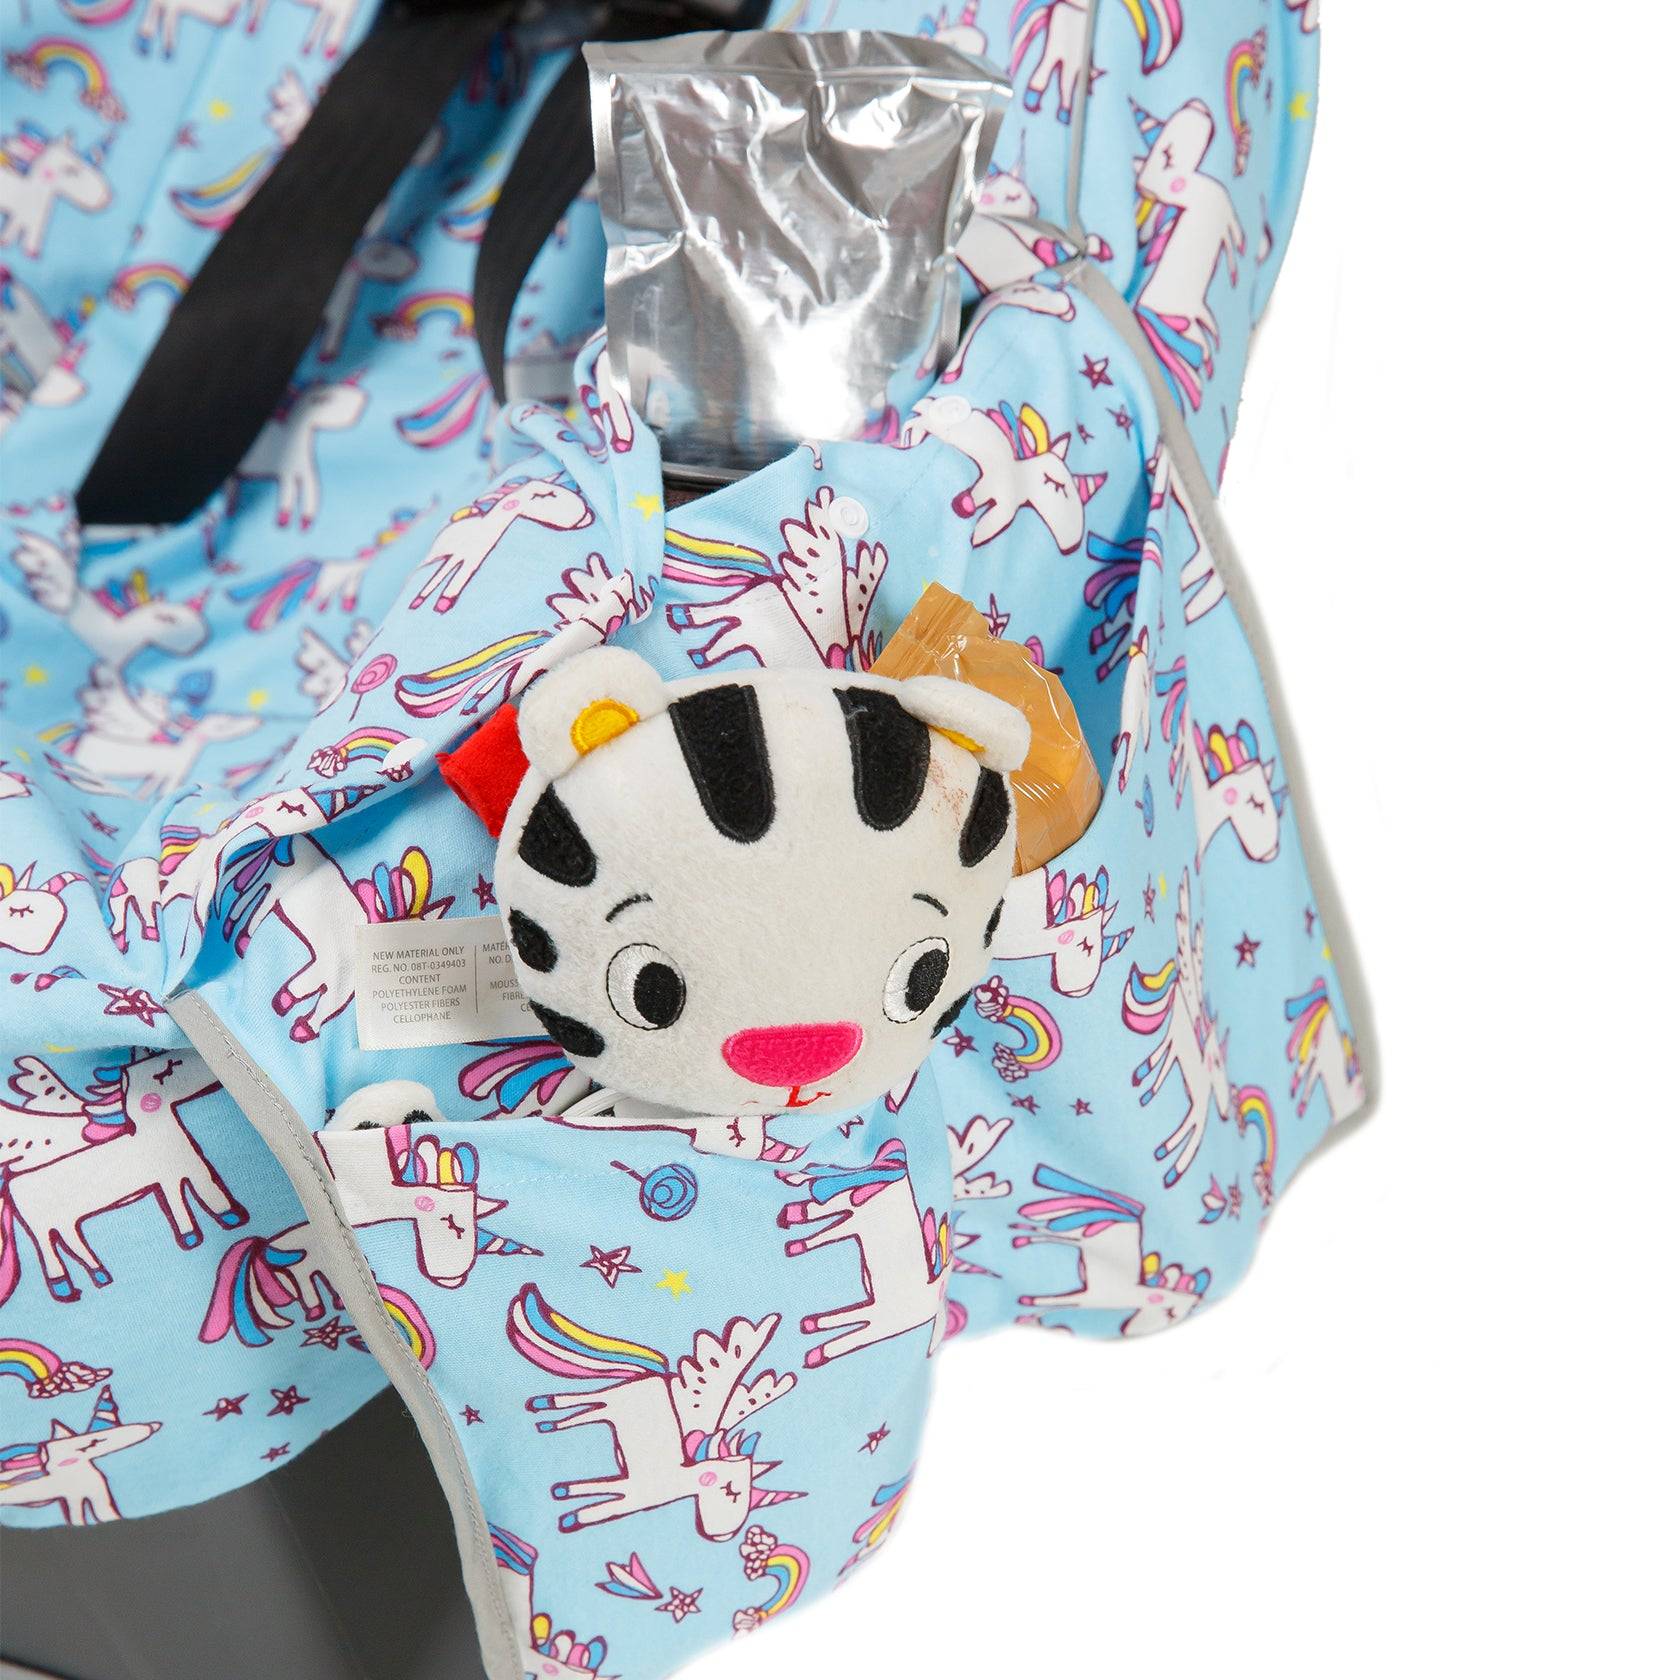 Niko Easy Wash Children's Car Seat Cover & Liner - 100% Cotton Jersey - Blue Unicorn